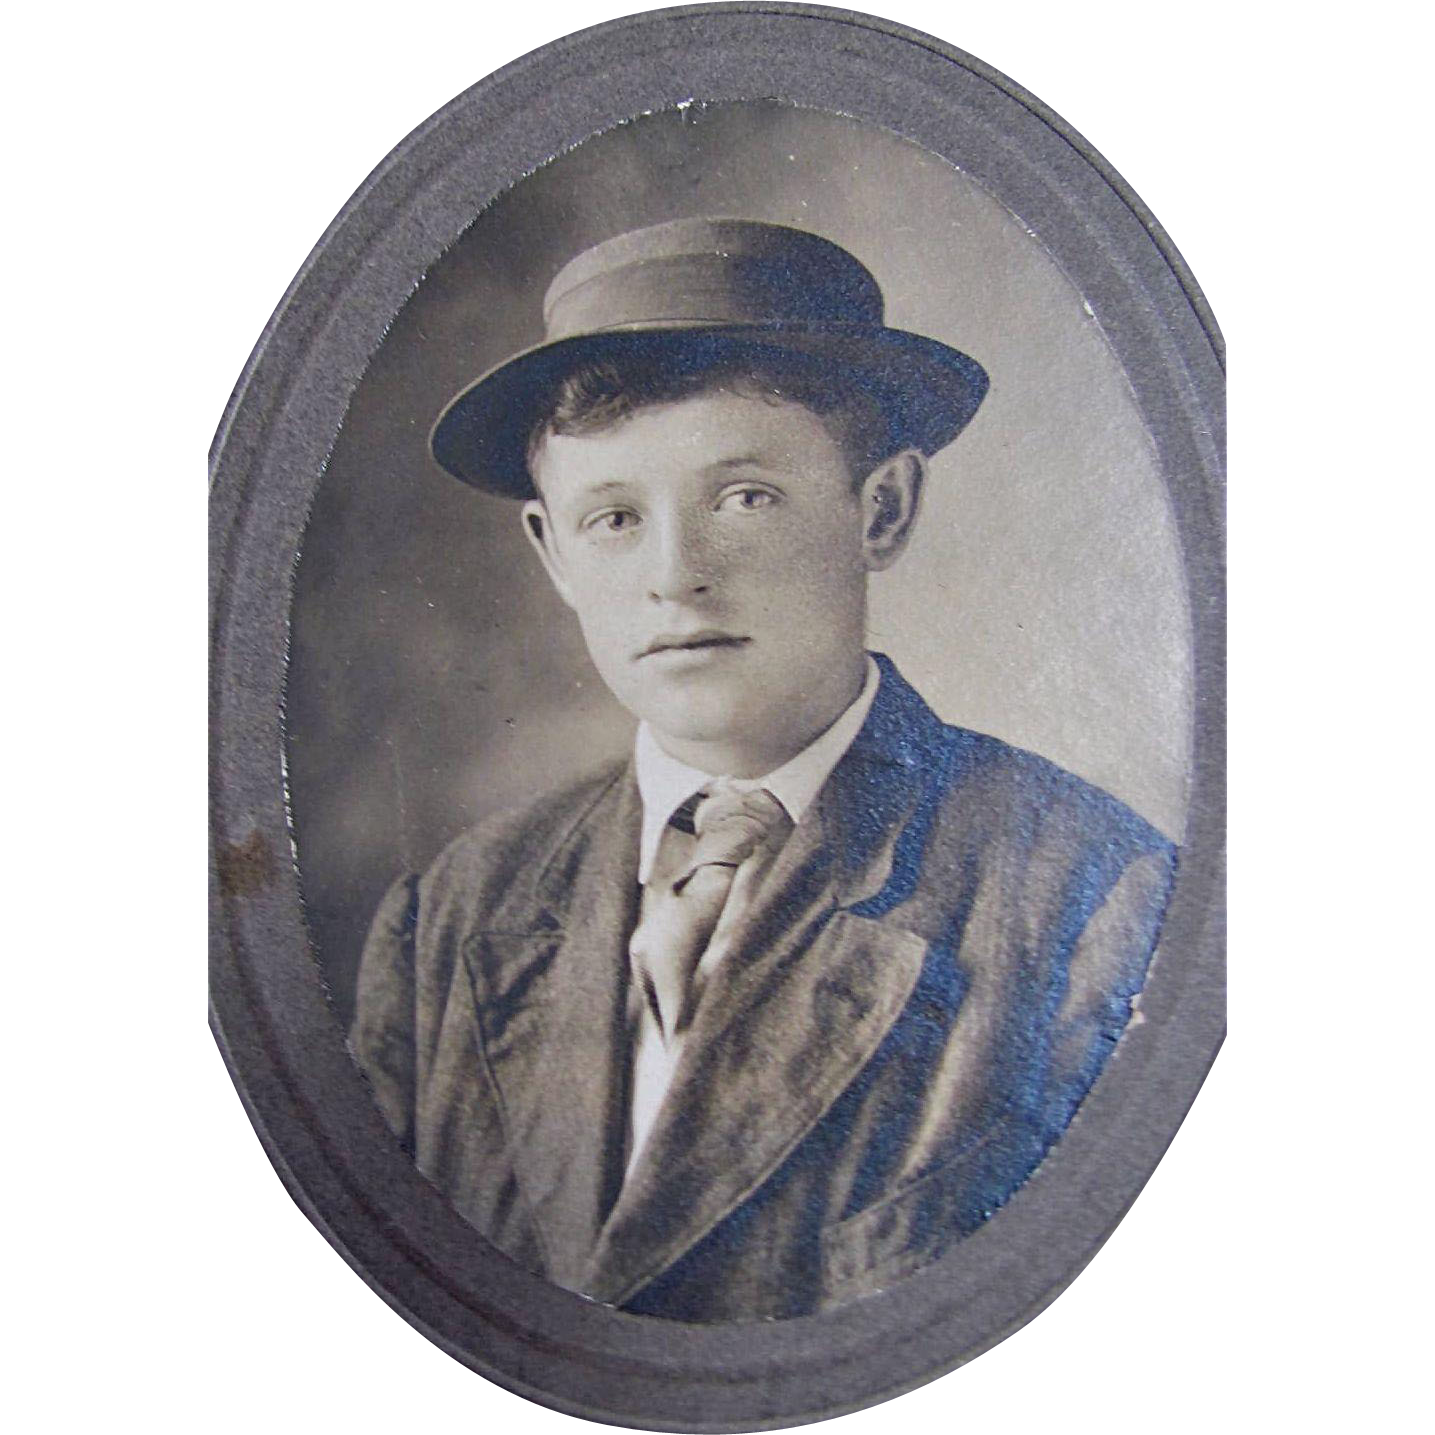 Original 19th Century Cabinet Photograph Young Boy Wearing Hat and Tie